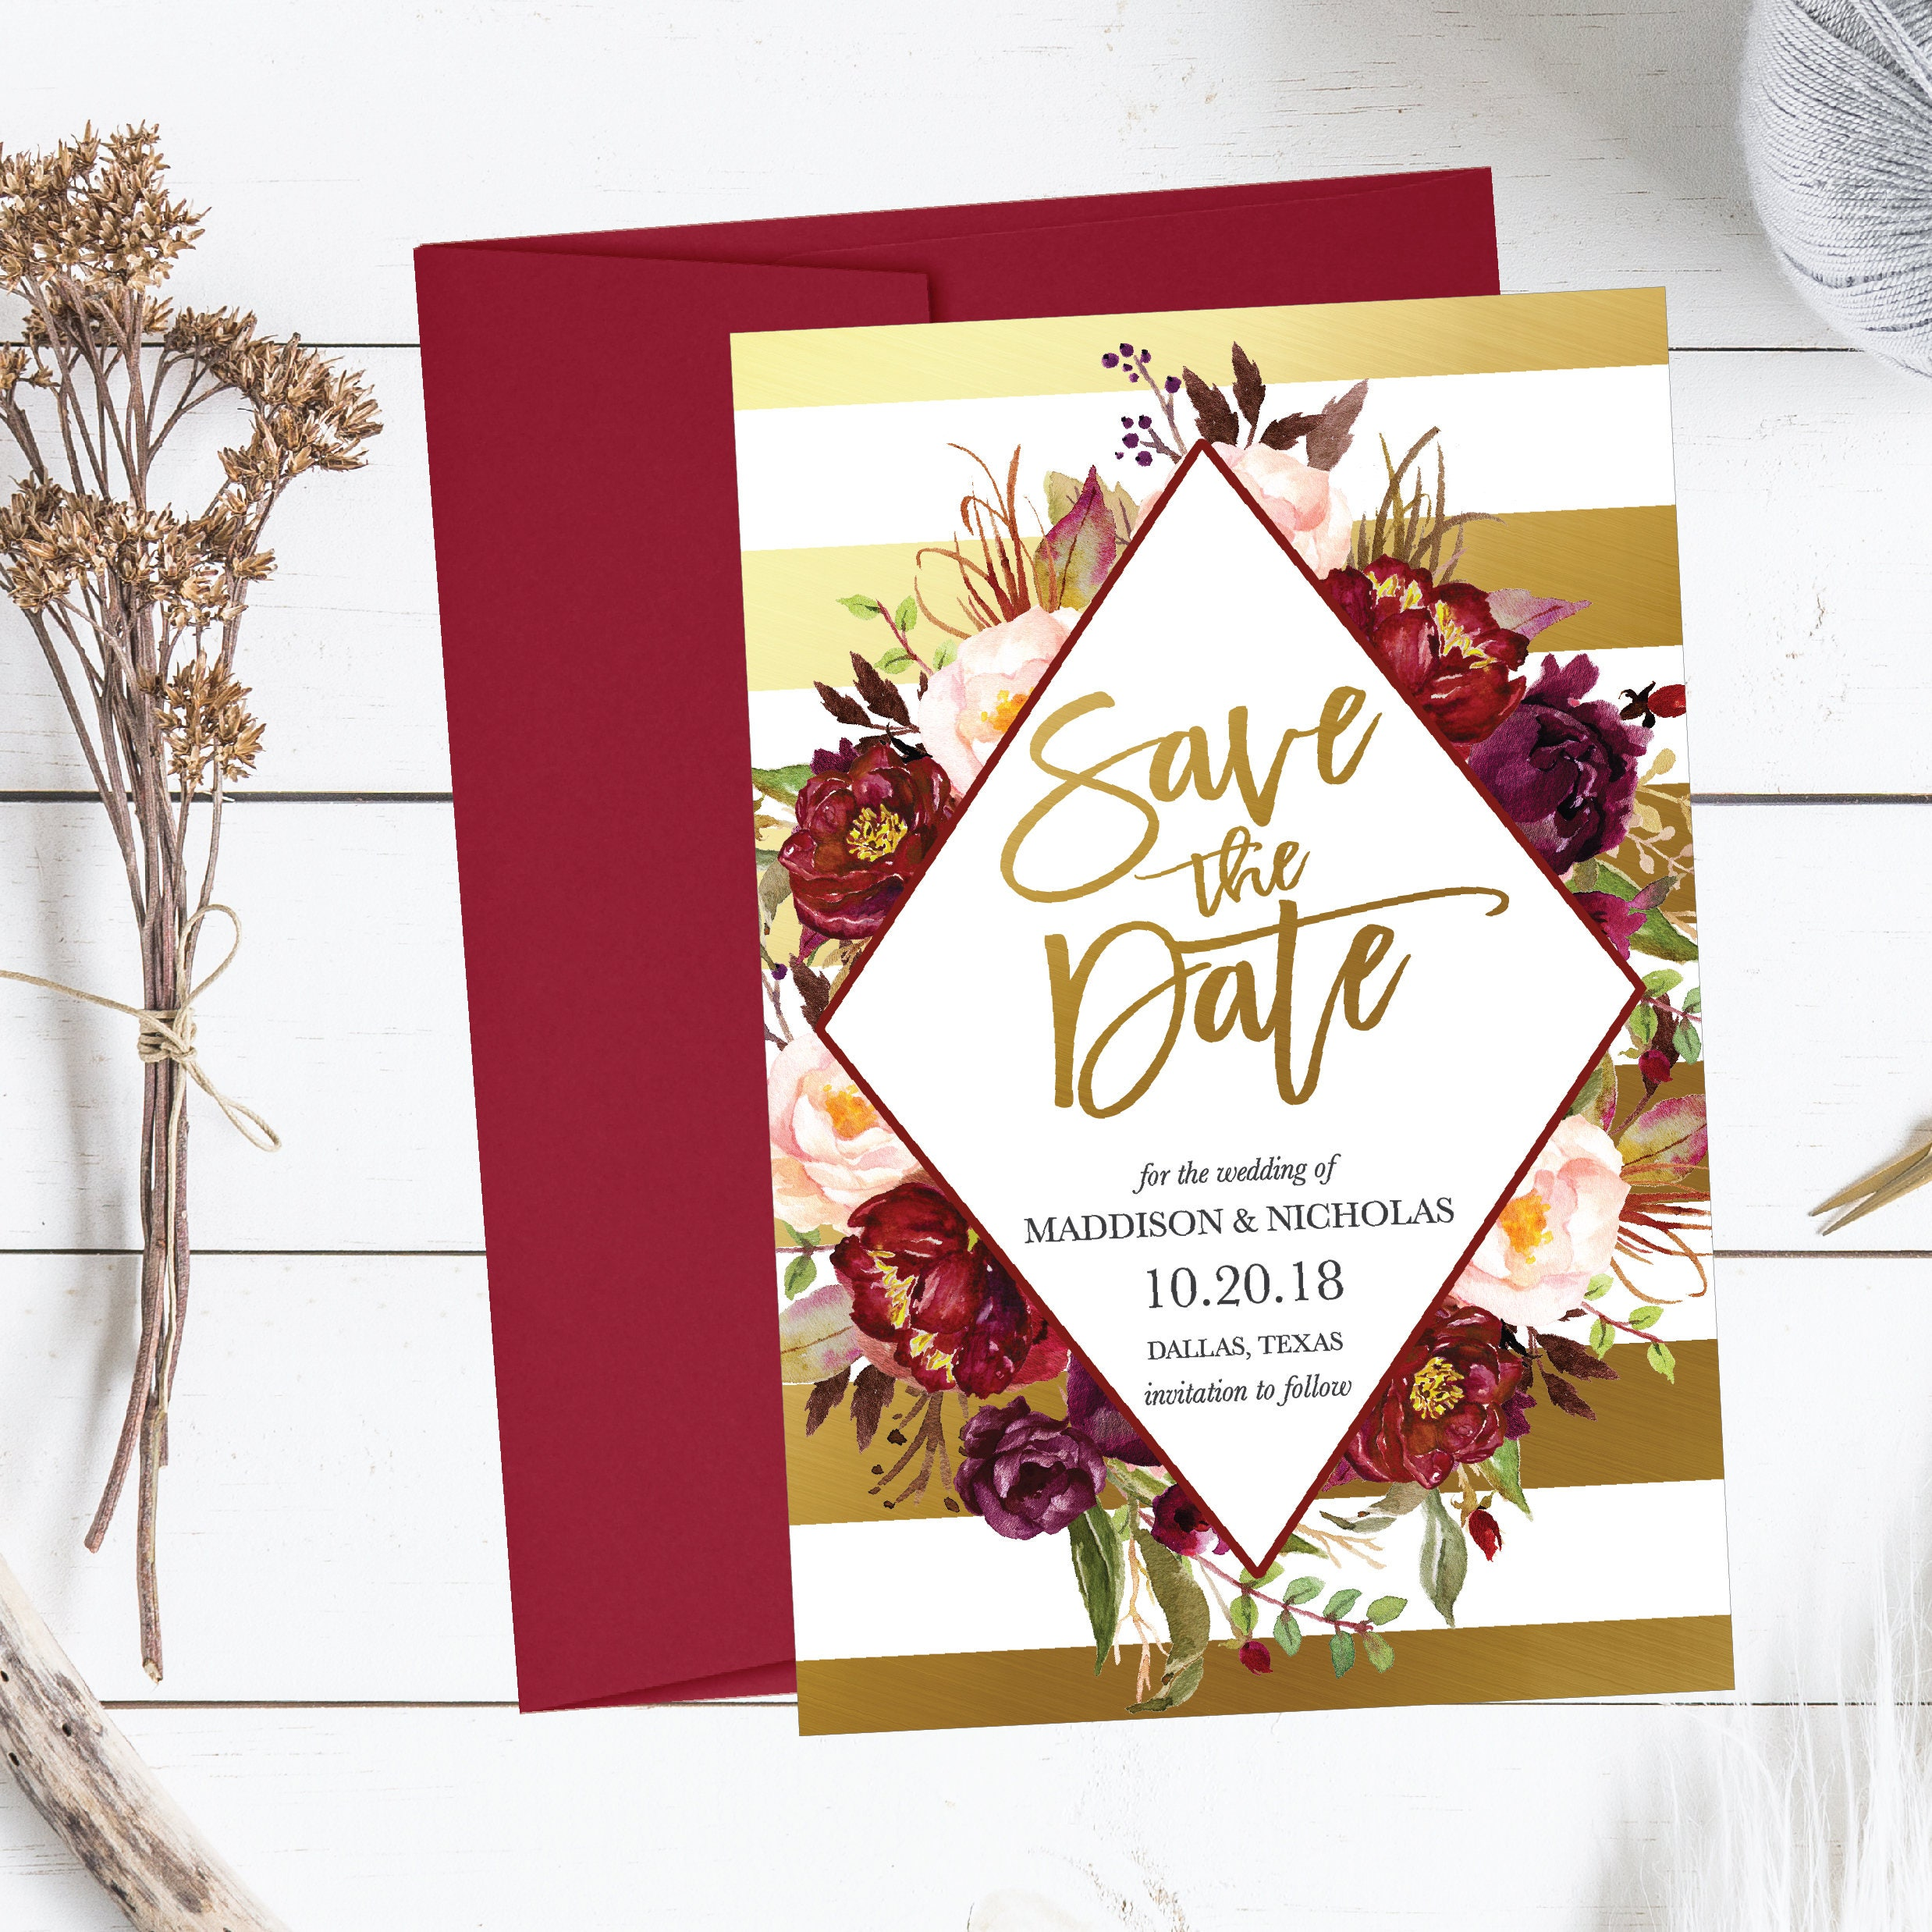 Printable Wedding Save The Date Cards Editable Template Gold | Etsy